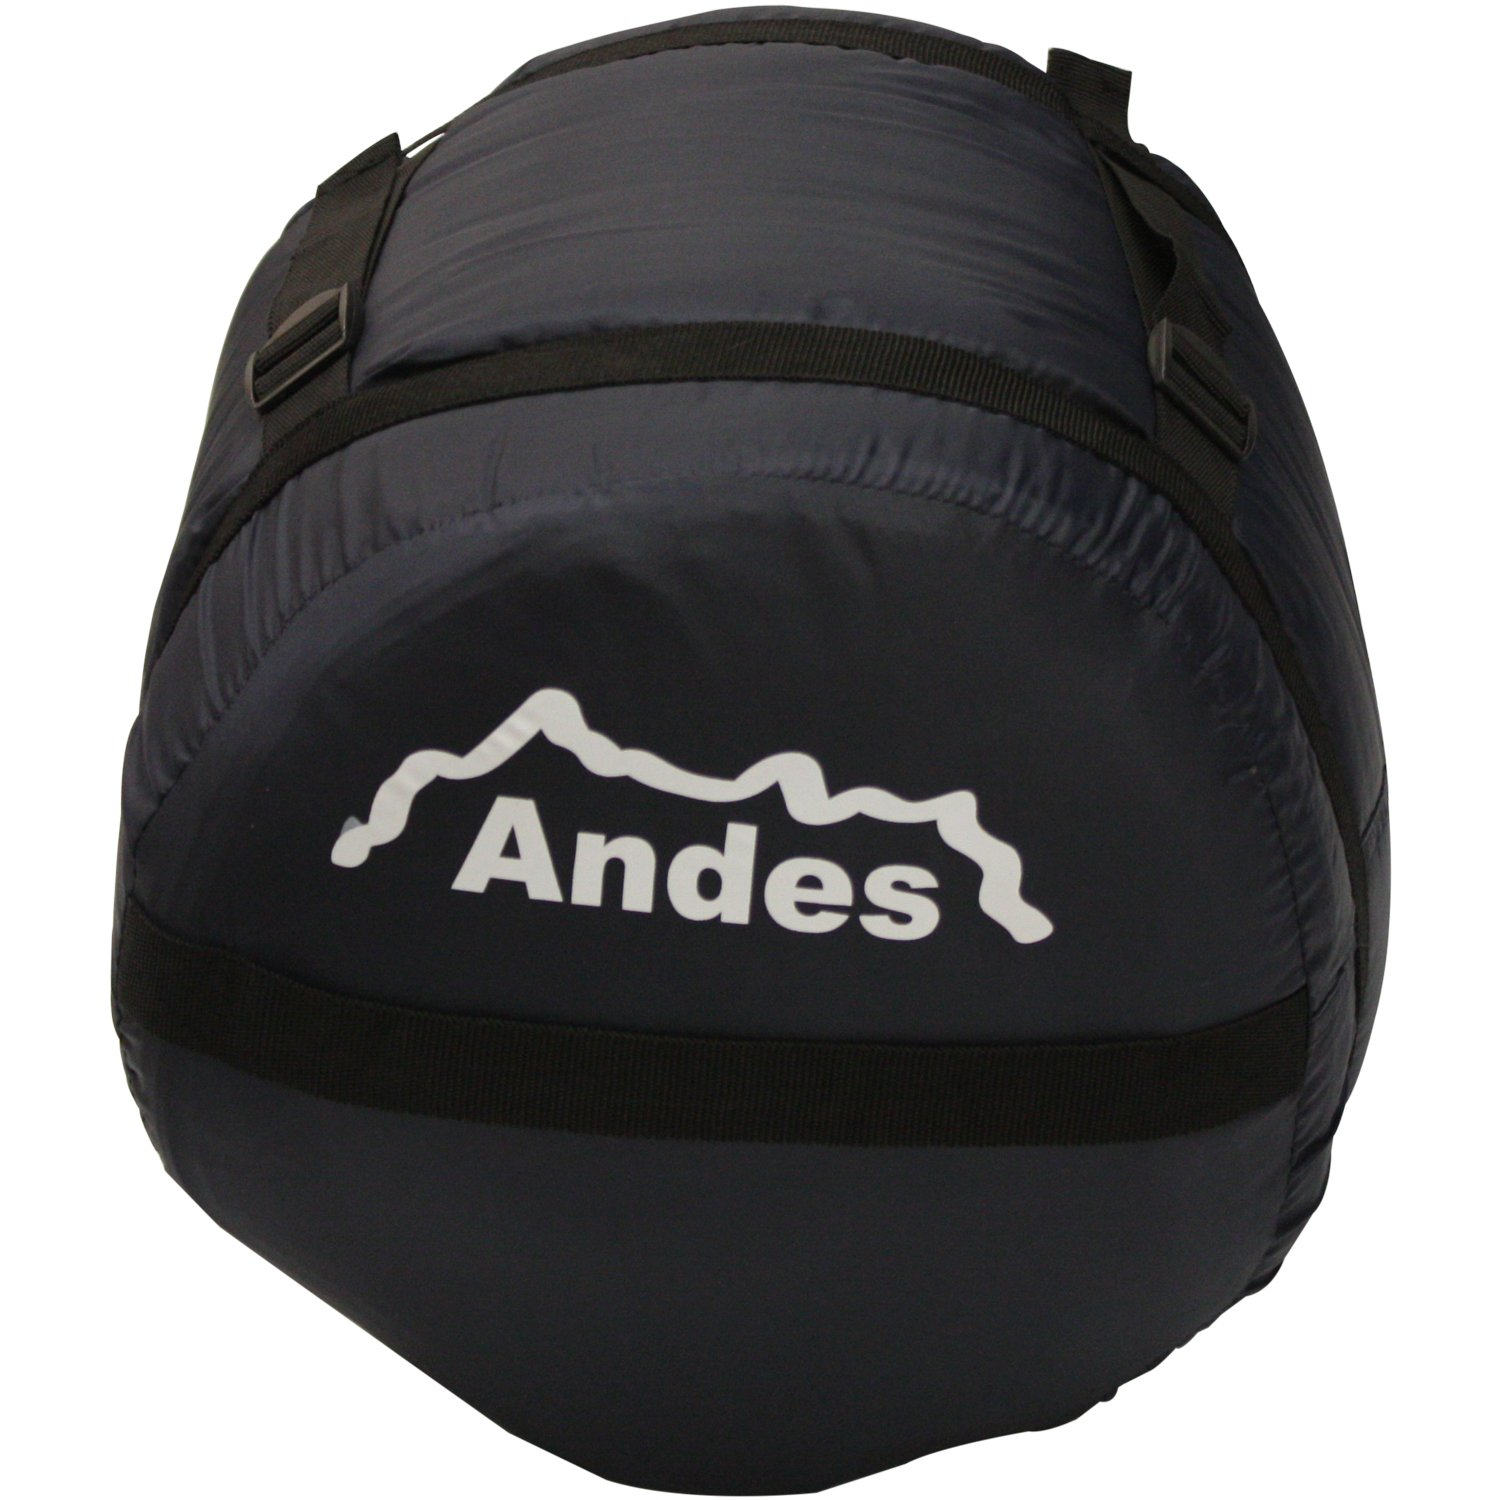 Festivals Waterproof Ideal Camping Compression Carry Bag Included Andes Palermo 400 Rectangle Sleeping Bag Warm 400GSM Filling